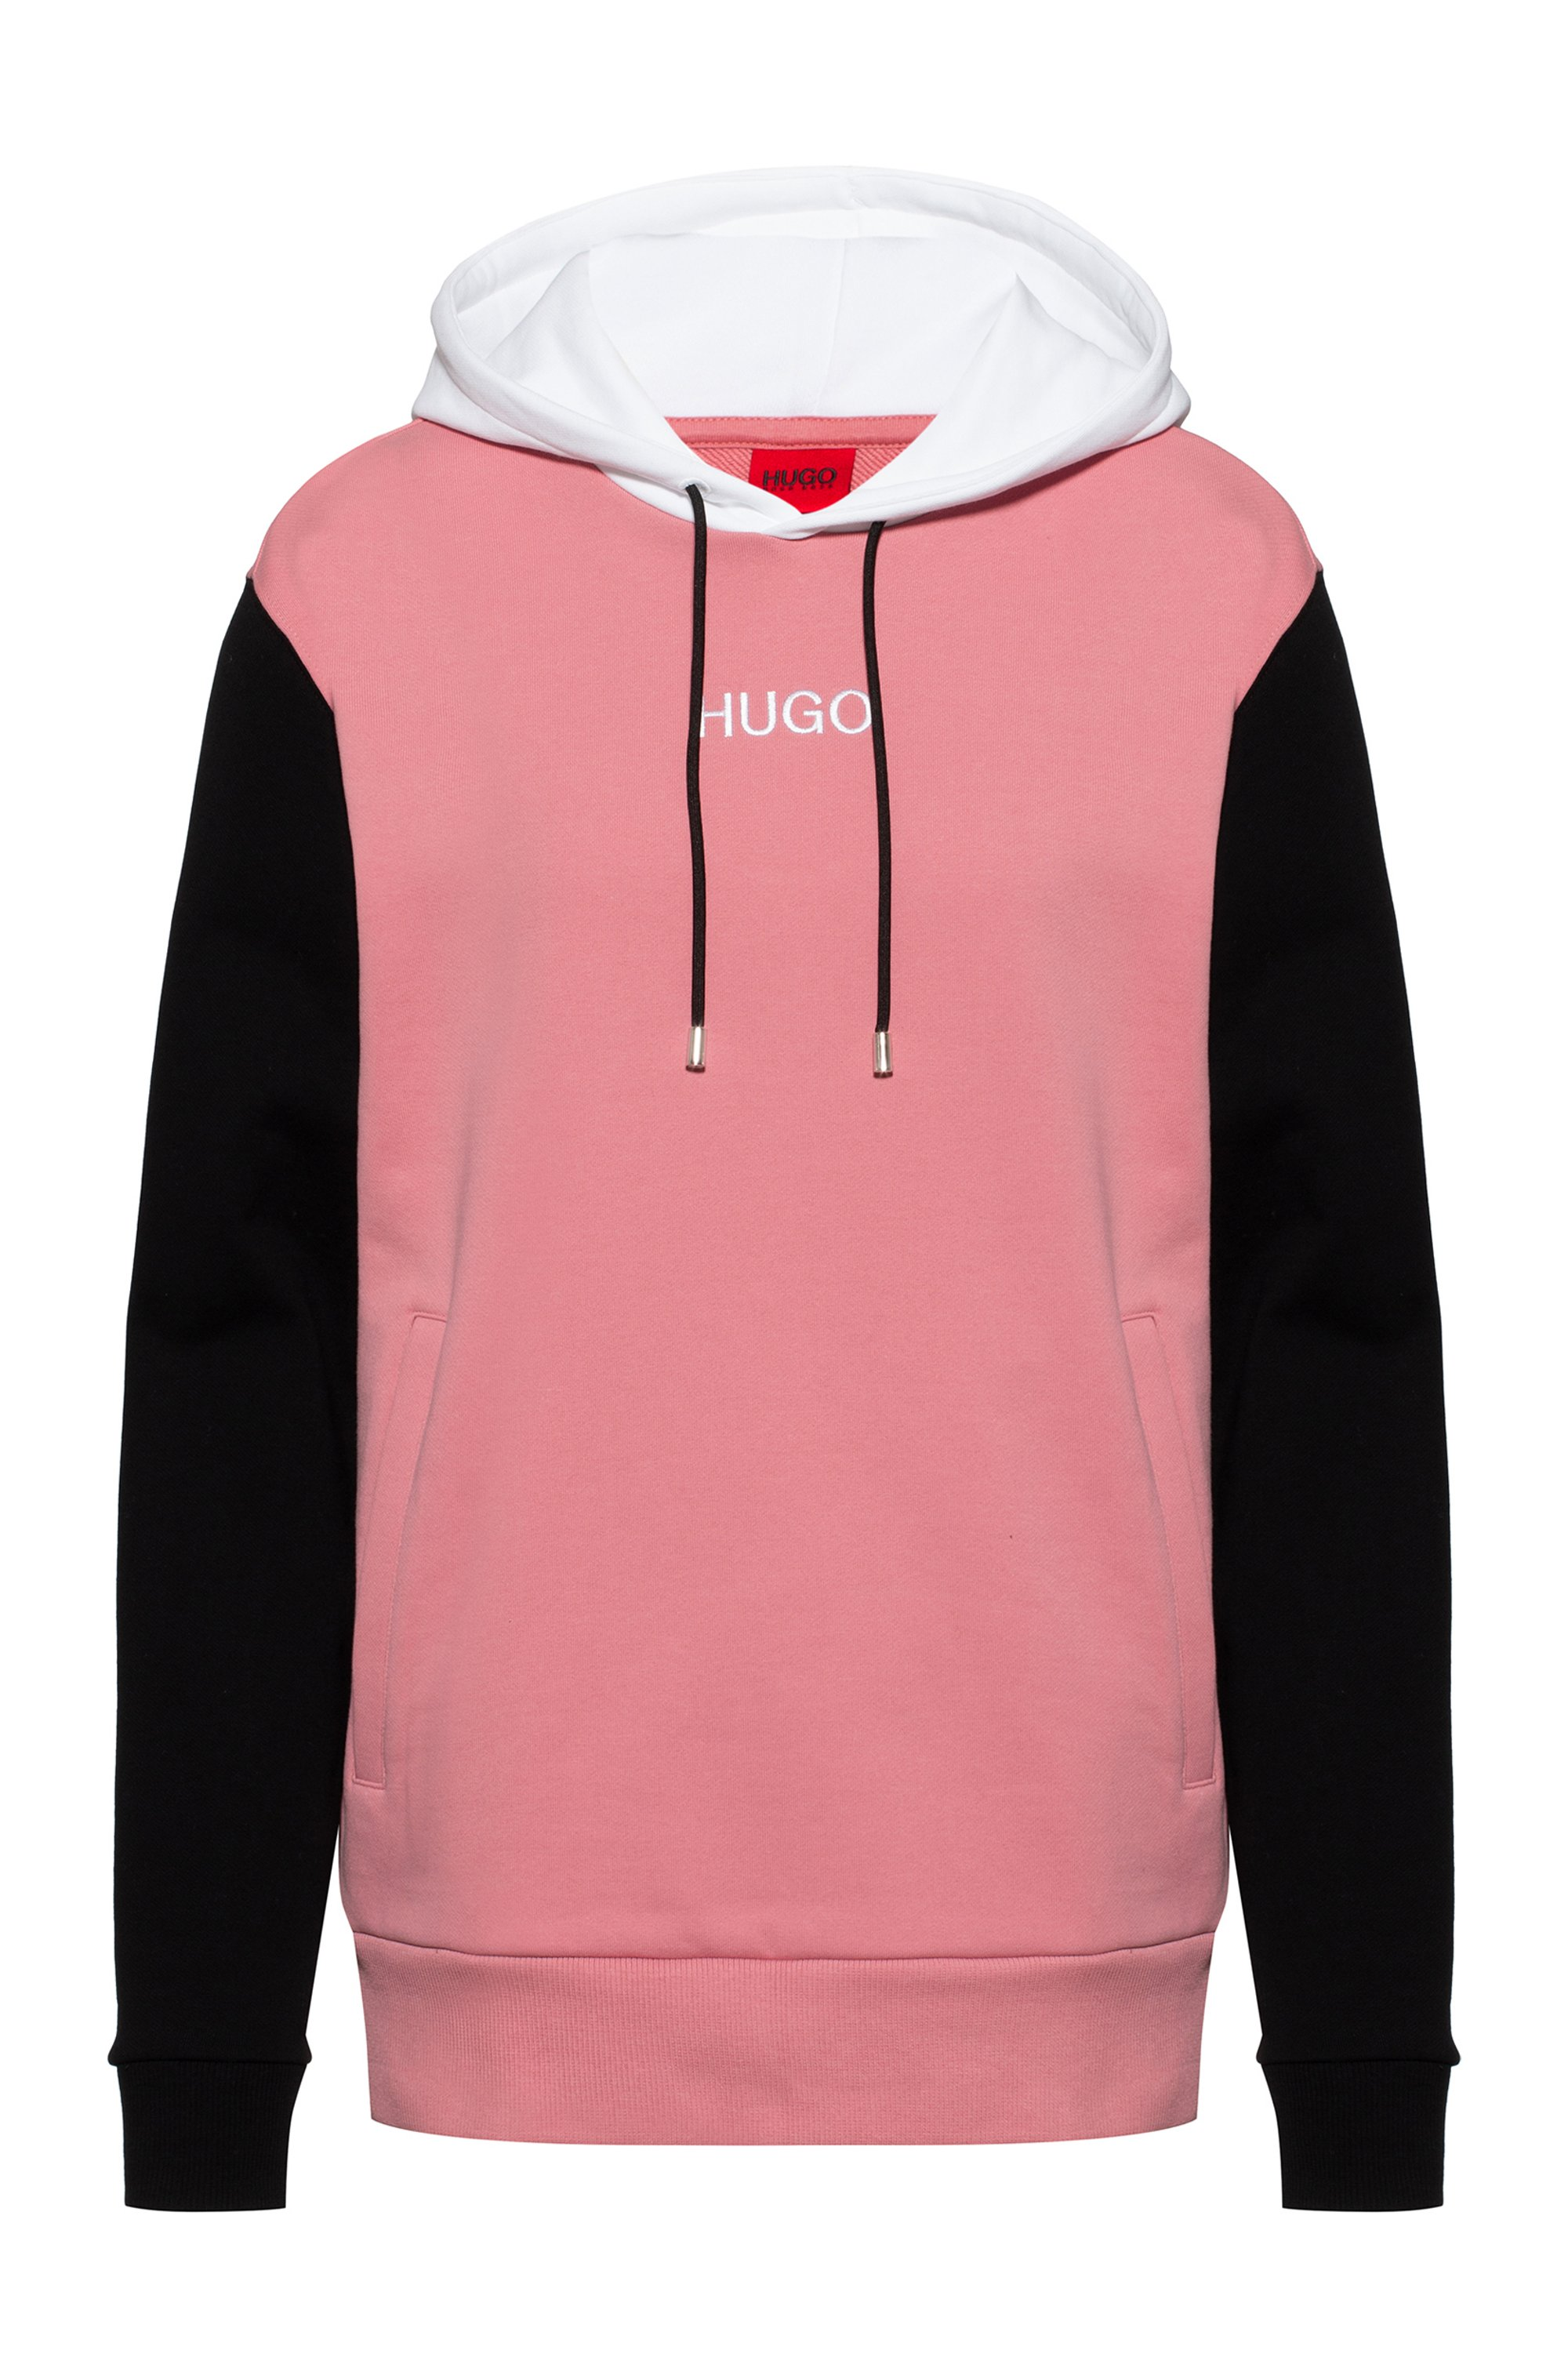 French-terry colour-block hooded sweatshirt with logo detail, Patterned